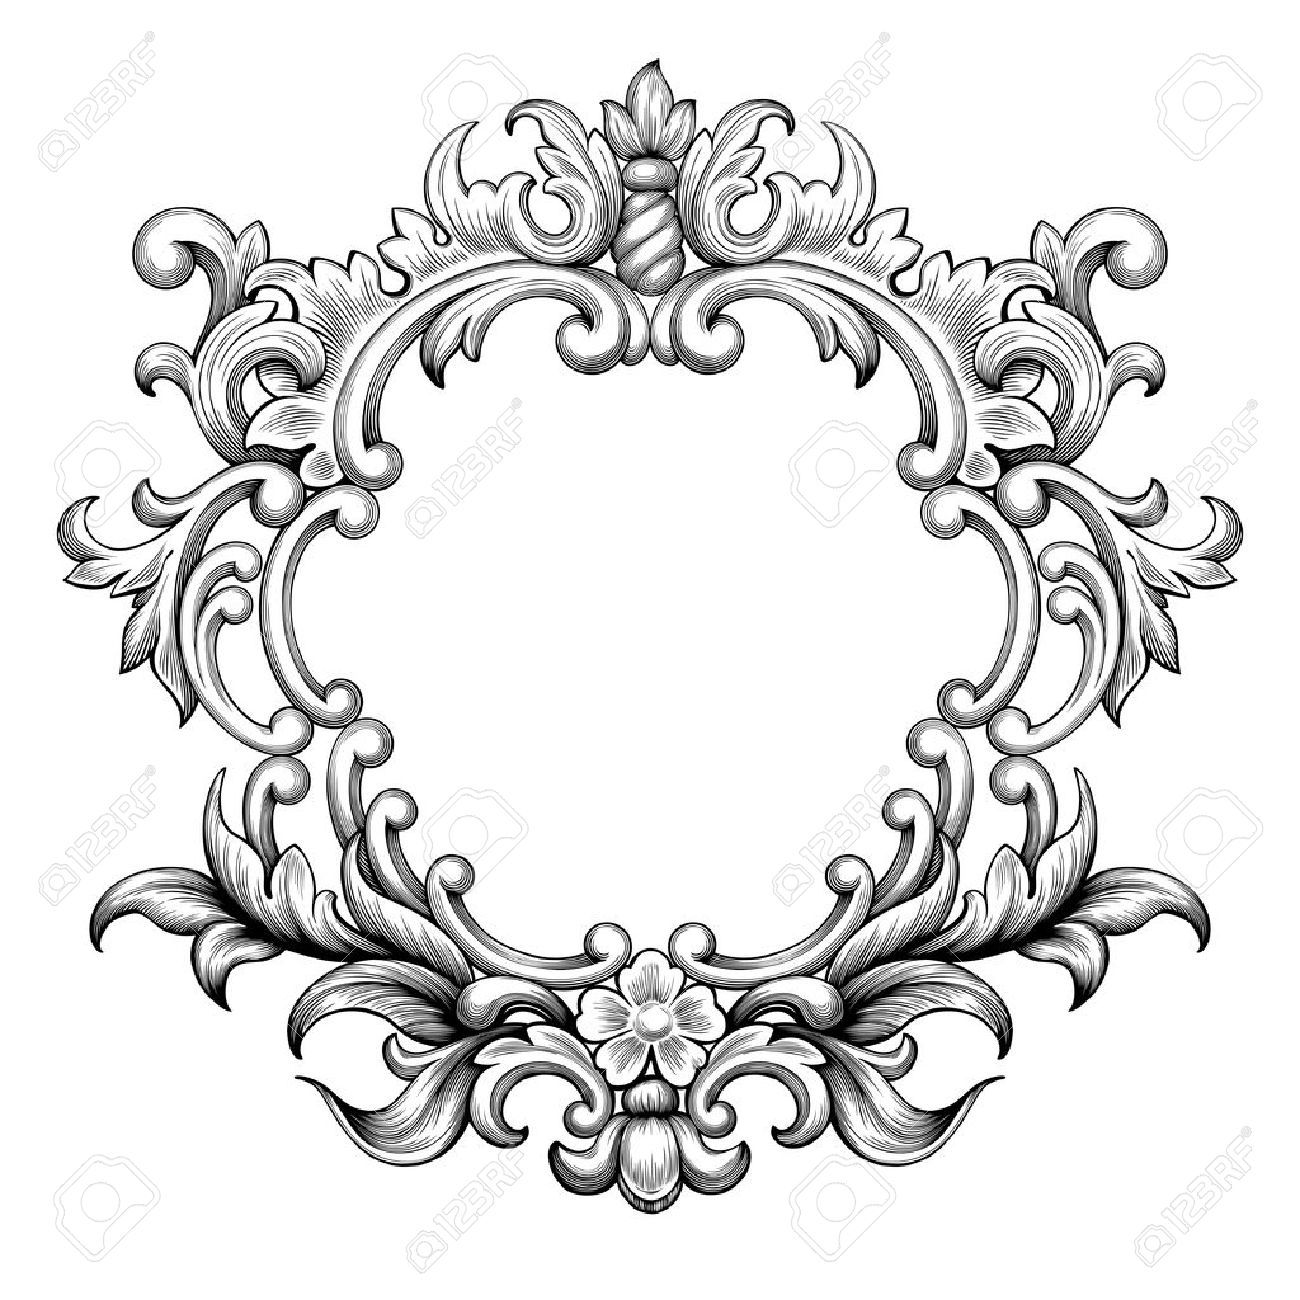 46103804-Vintage-baroque-frame-border-leaf-scroll-floral-ornament ...